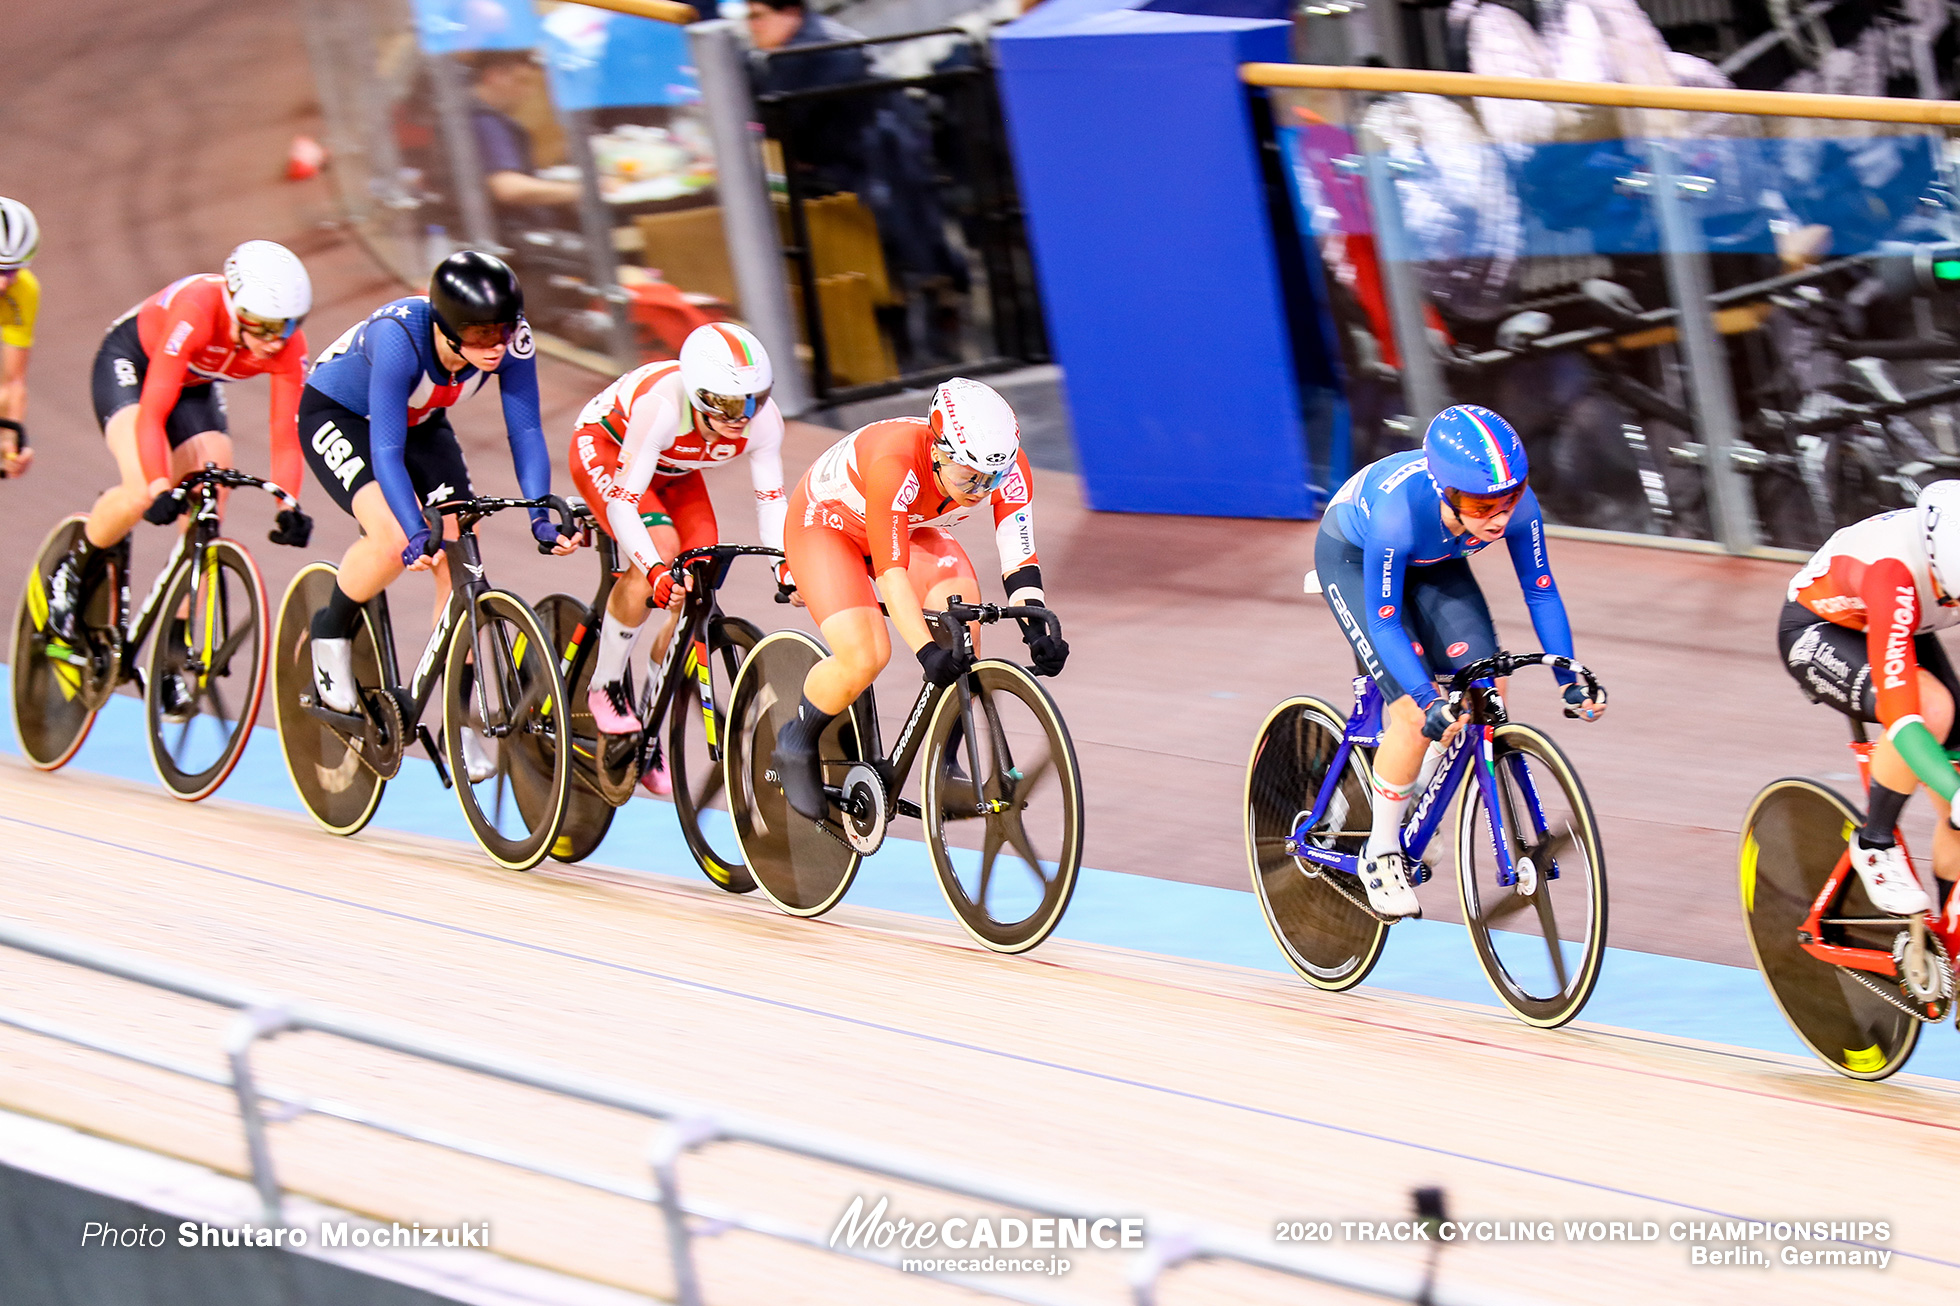 Point Race / Women's Omnium / 2020 Track Cycling World Championships